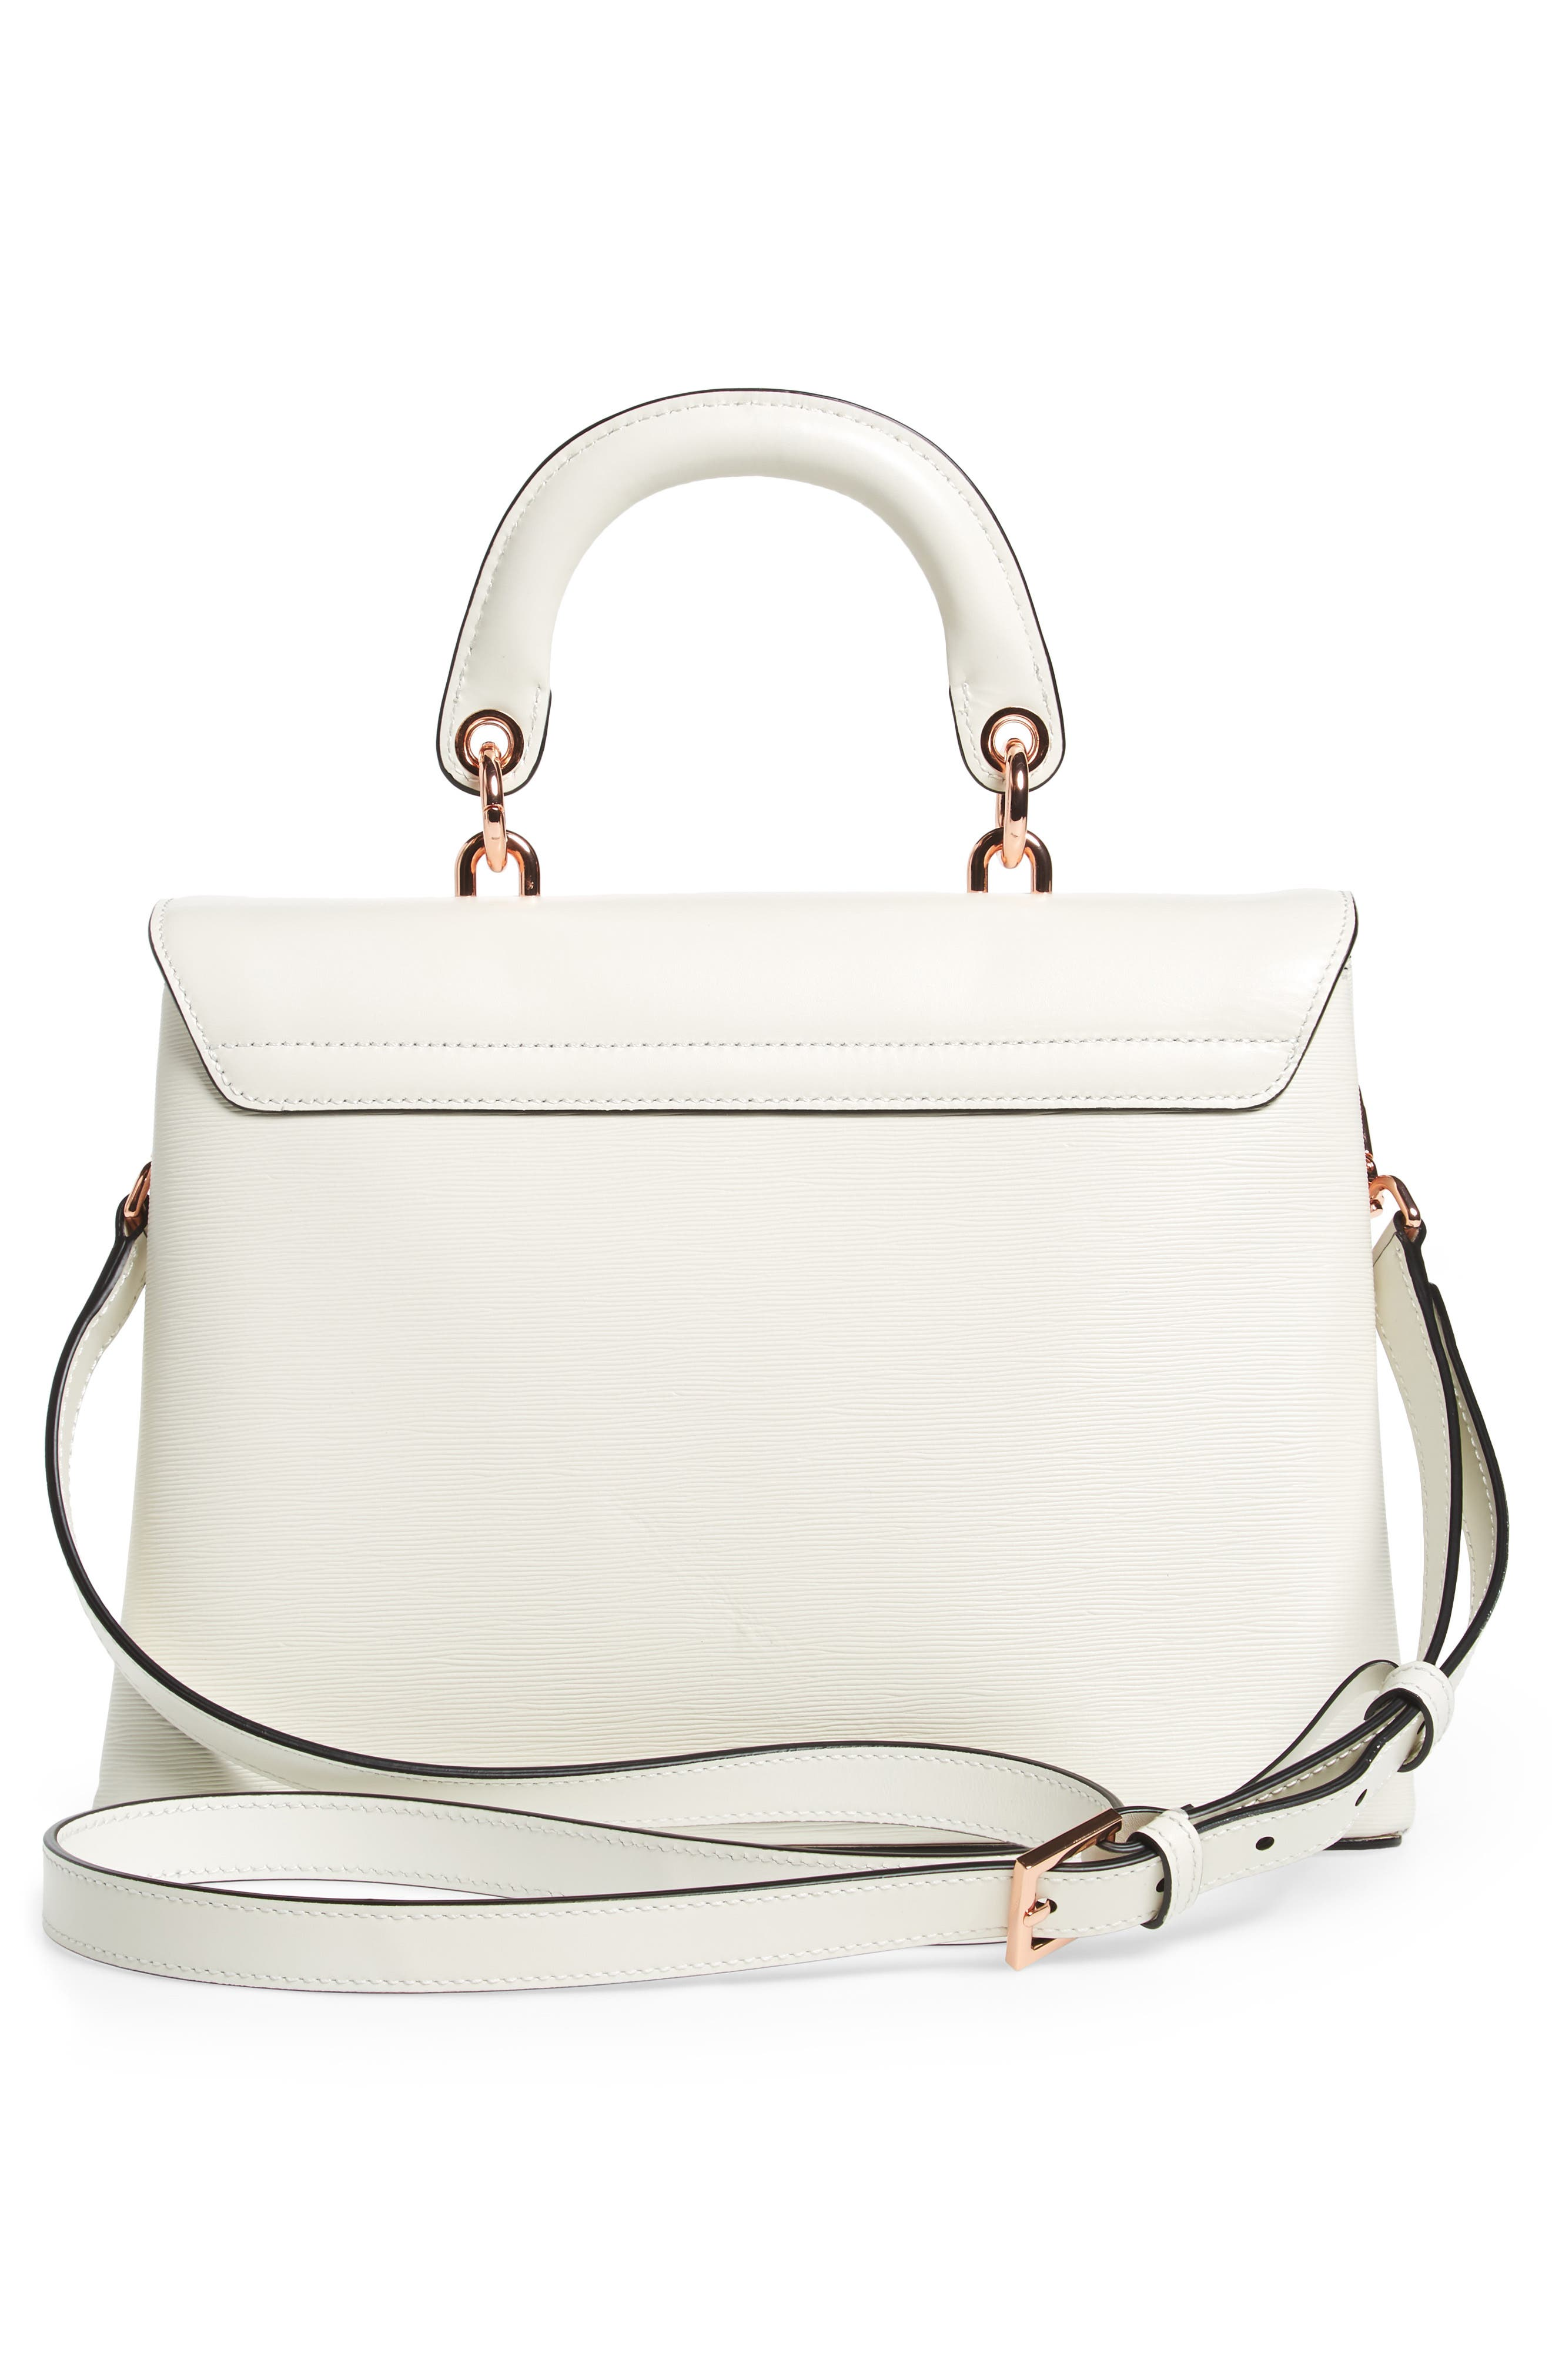 Lady Bow Flap Top Handle Leather Satchel,                             Alternate thumbnail 2, color,                             Ivory